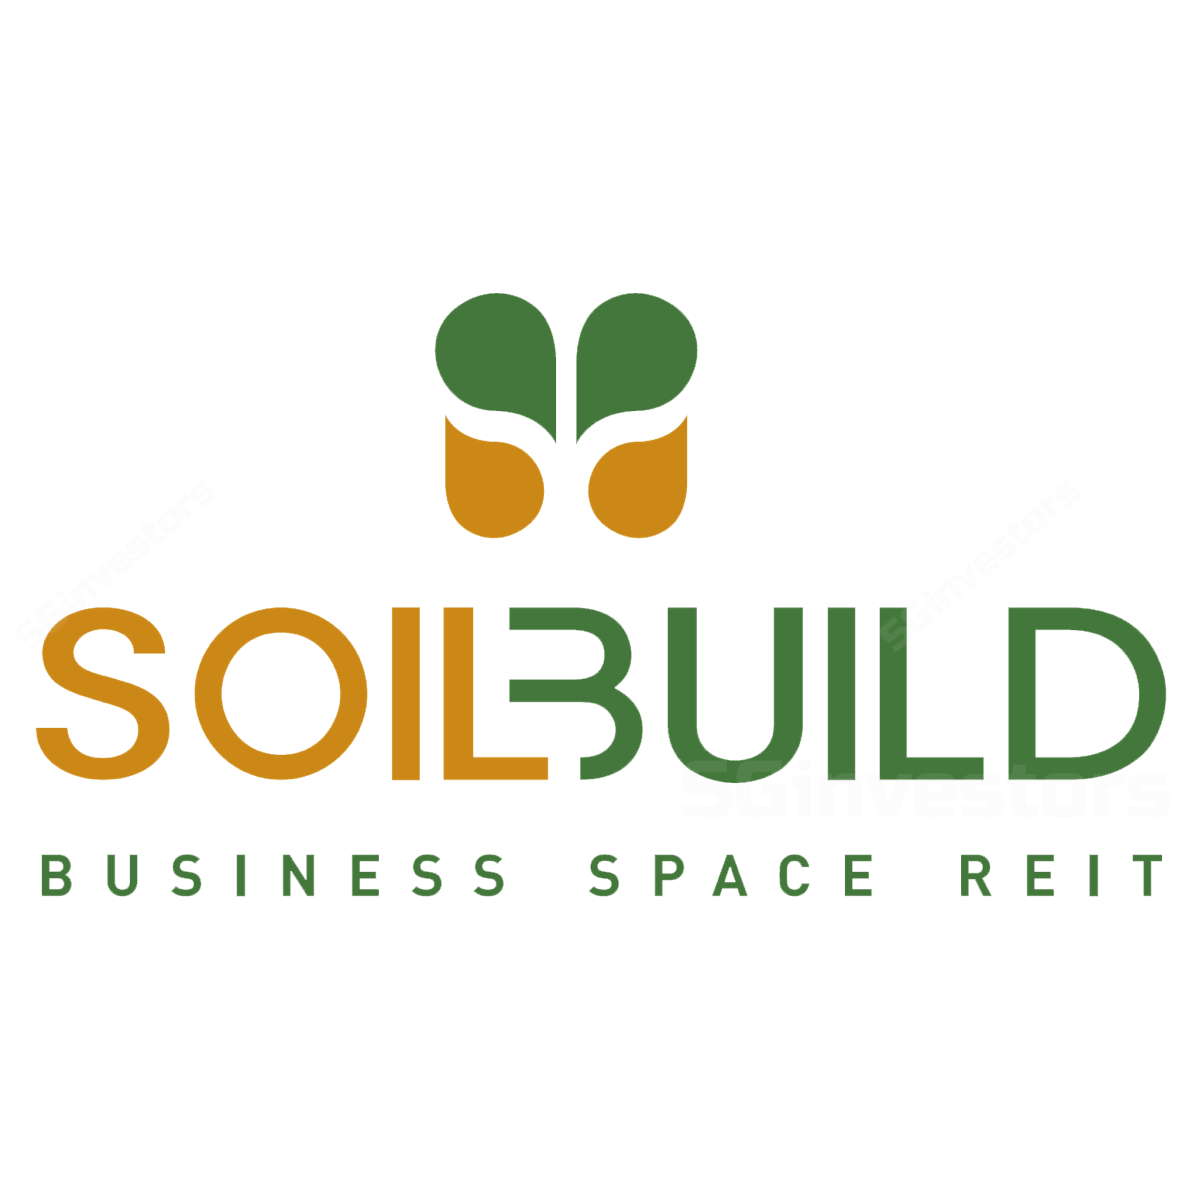 Soilbuild Business Space REIT - Phillip Securities 2016-12-12: Termination of lease at Technics Offshore